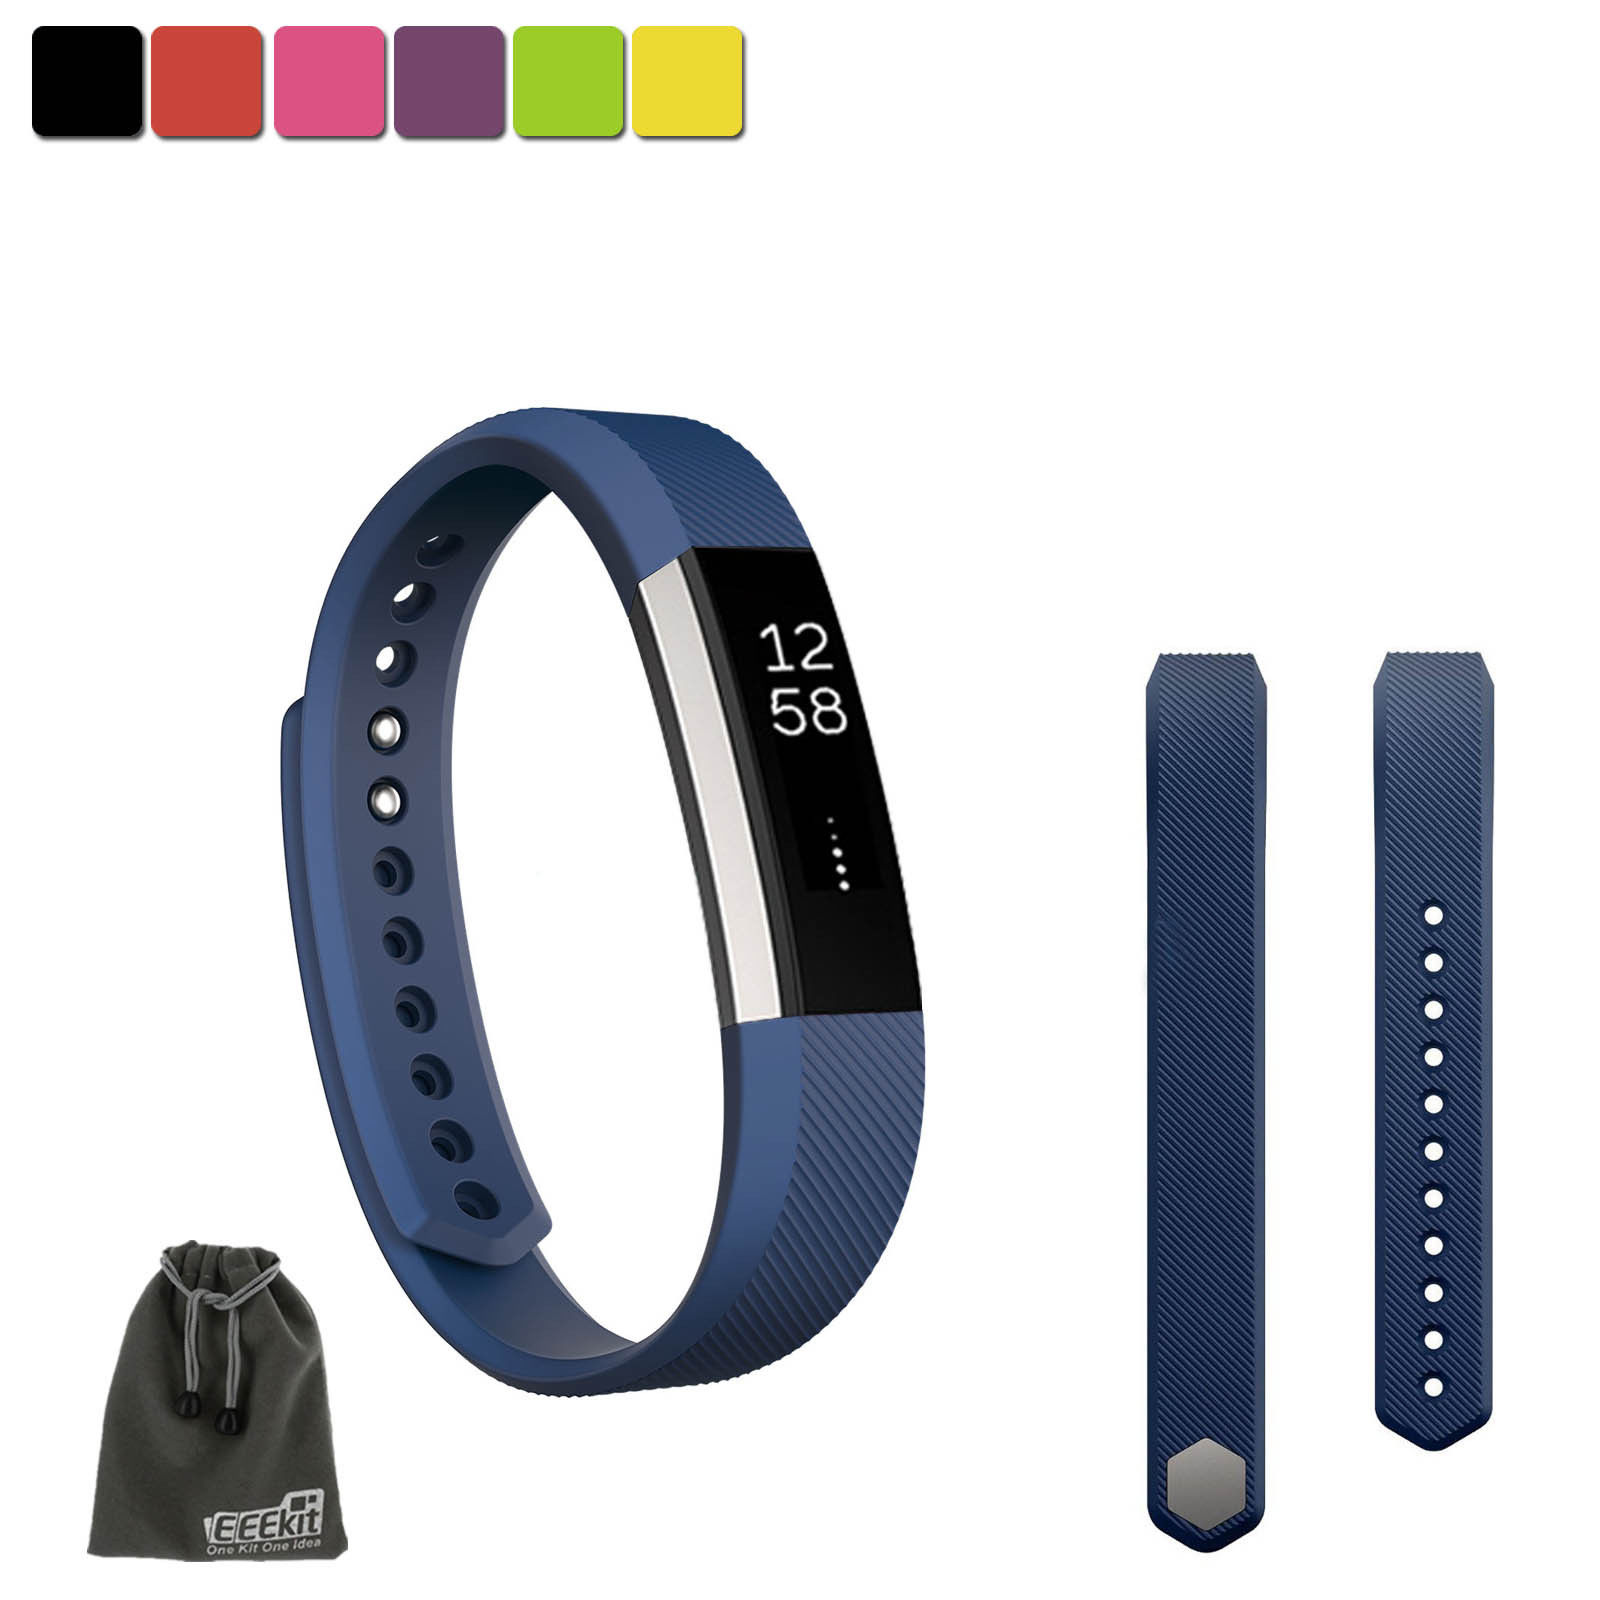 EEEKit SMALL S Size Silicone Replacement Sports Watch Wrist Band Strap w/ Clasp for Fitbit Alta(Deep Blue)